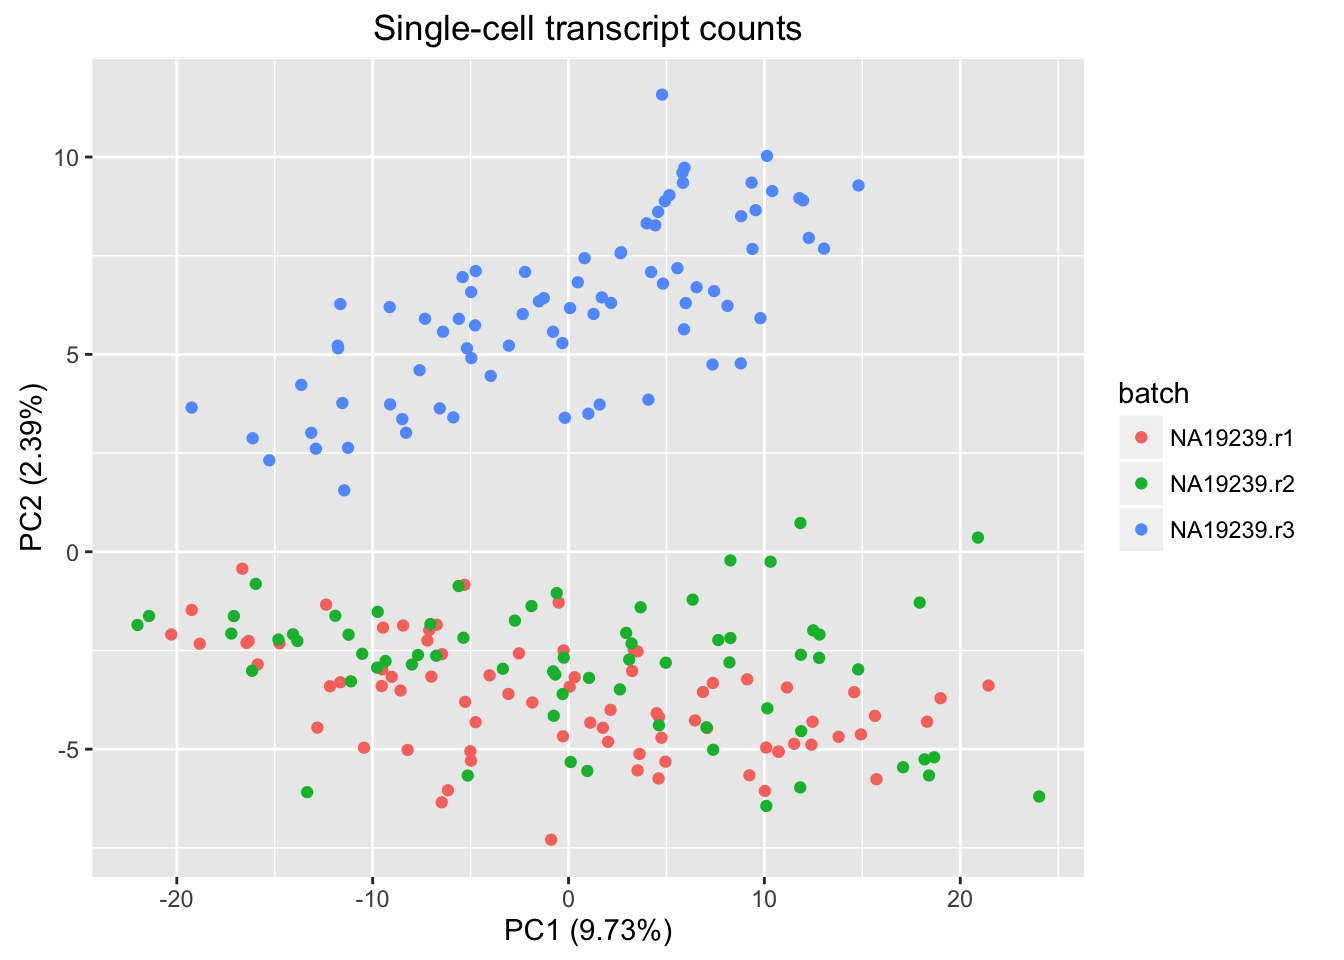 Use PCA to visualize single-cell data